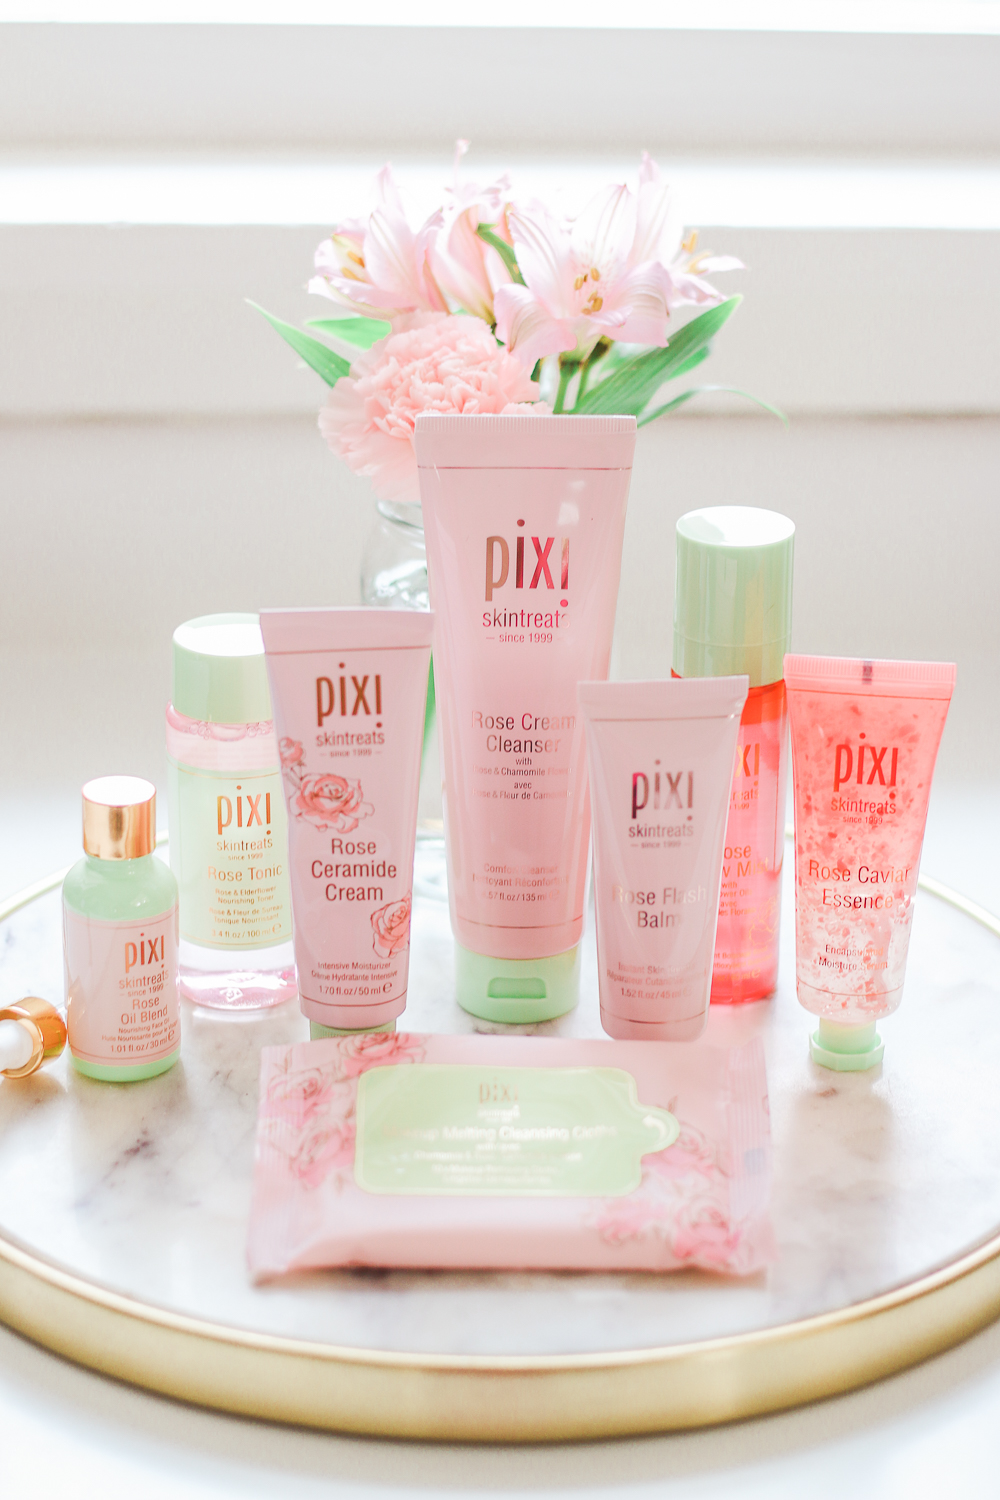 Rose-Infused Skincare Picks: Best Pixi Products for Dry Sensitive Skin by drugstore beauty blogger Stephanie Ziajka from Diary of a Debutante, best of Pixi rose infused skincare, pixi rose infused skintreats, best pixi skincare products, pixi rose oil blend review, pixi by petra rose oil blend, pixi products review, pixi rose cream cleanser review, pixi rose ceramid cream review, pixi rose caviar essence review, pixi rose flash balm review, pixi makeup melting cleansing cloths review, pixi rose glow mist review